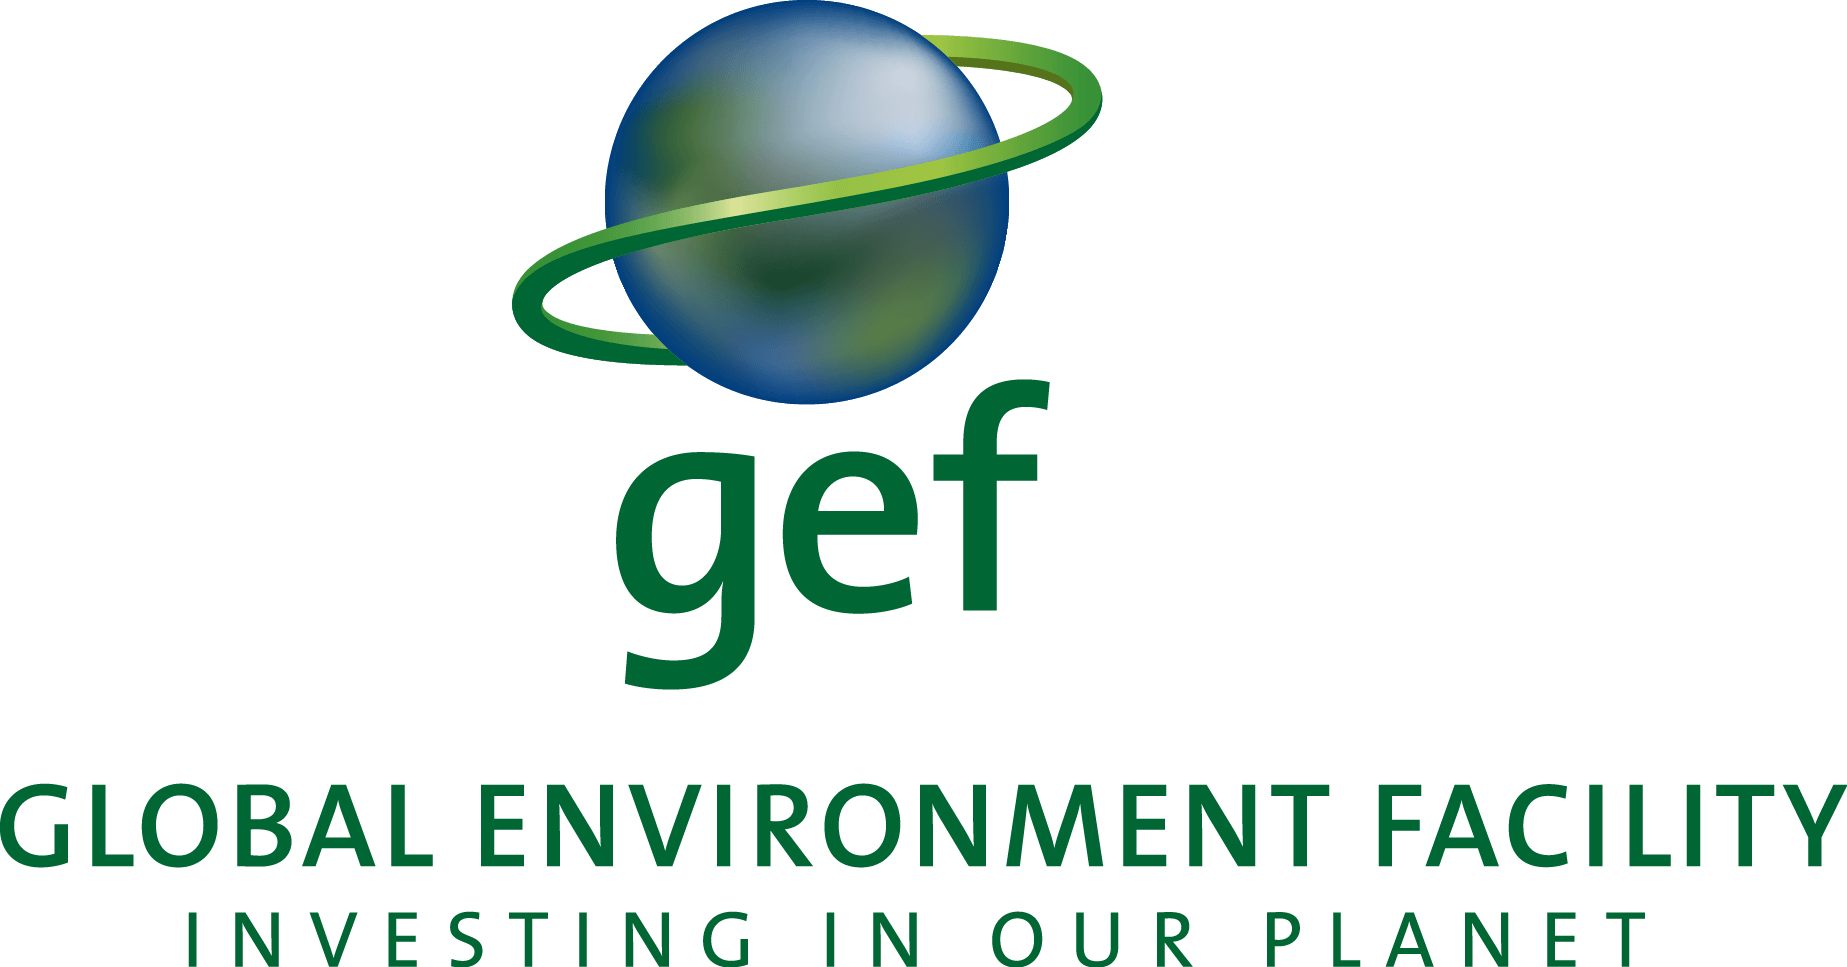 gef global environment facility logo